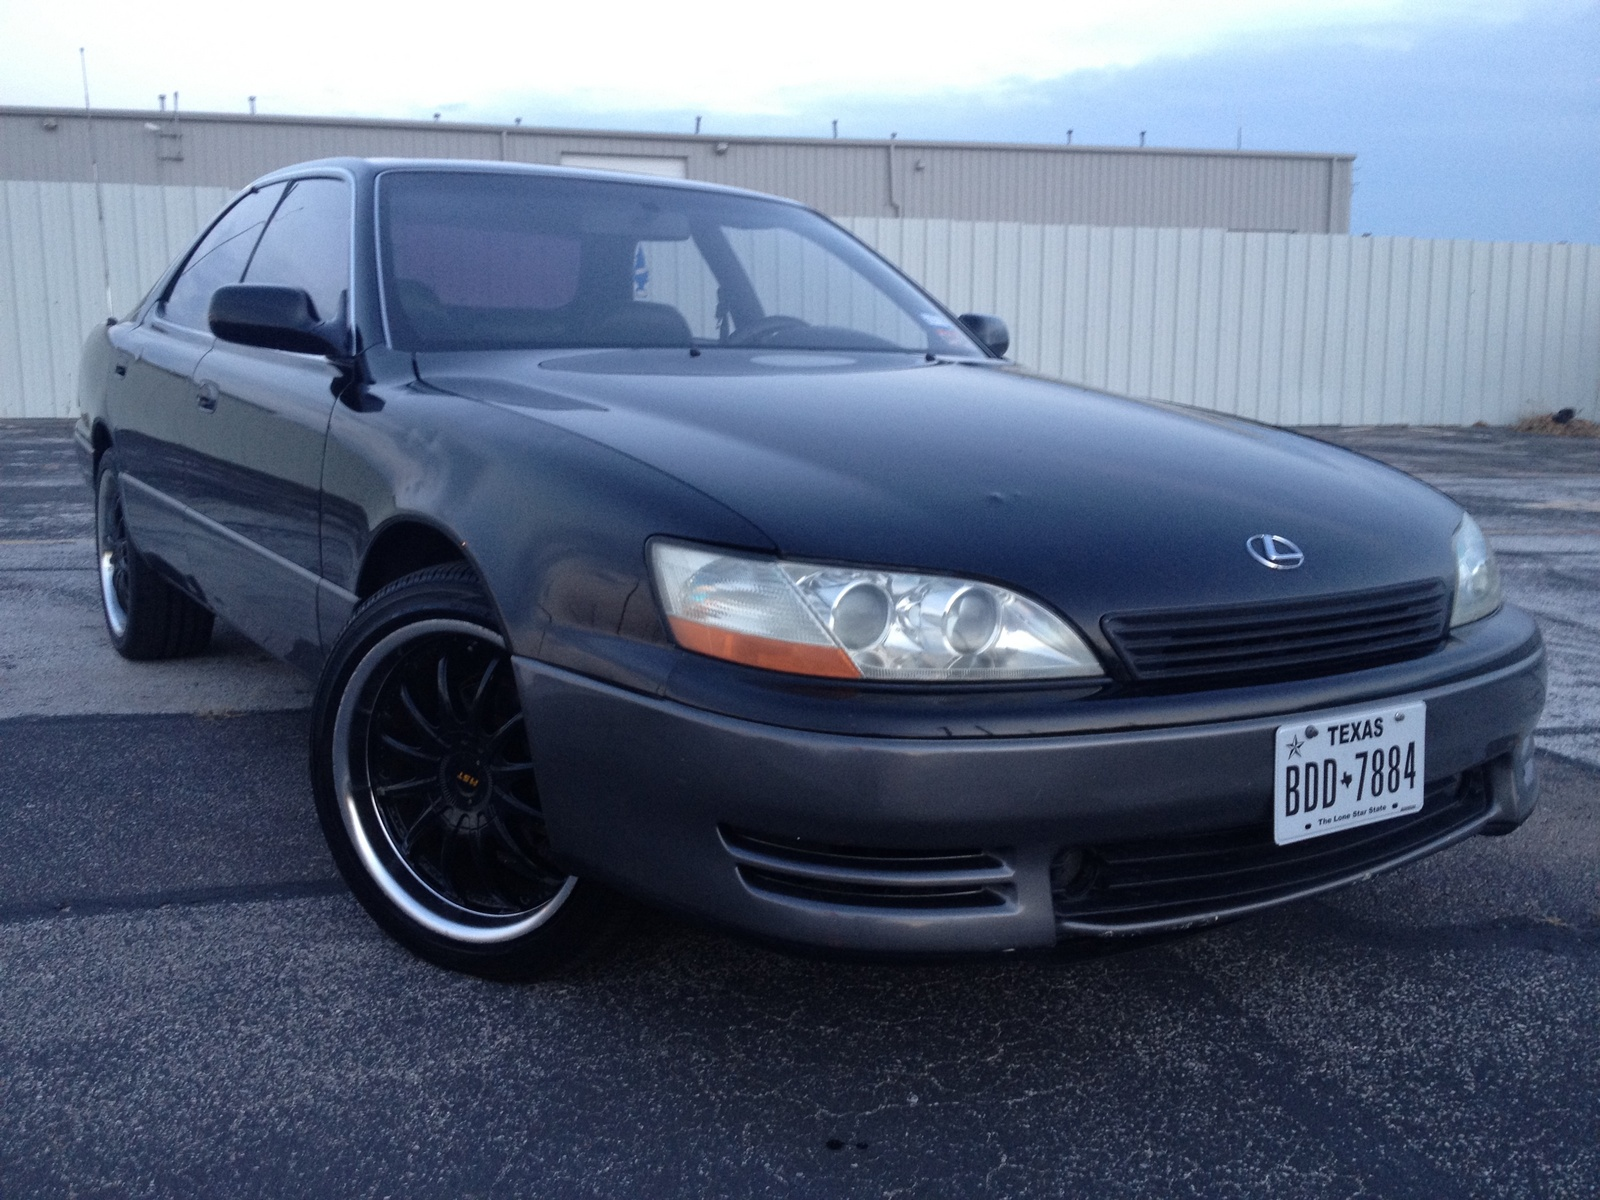 Lexus ES 300 1994 photo - 5